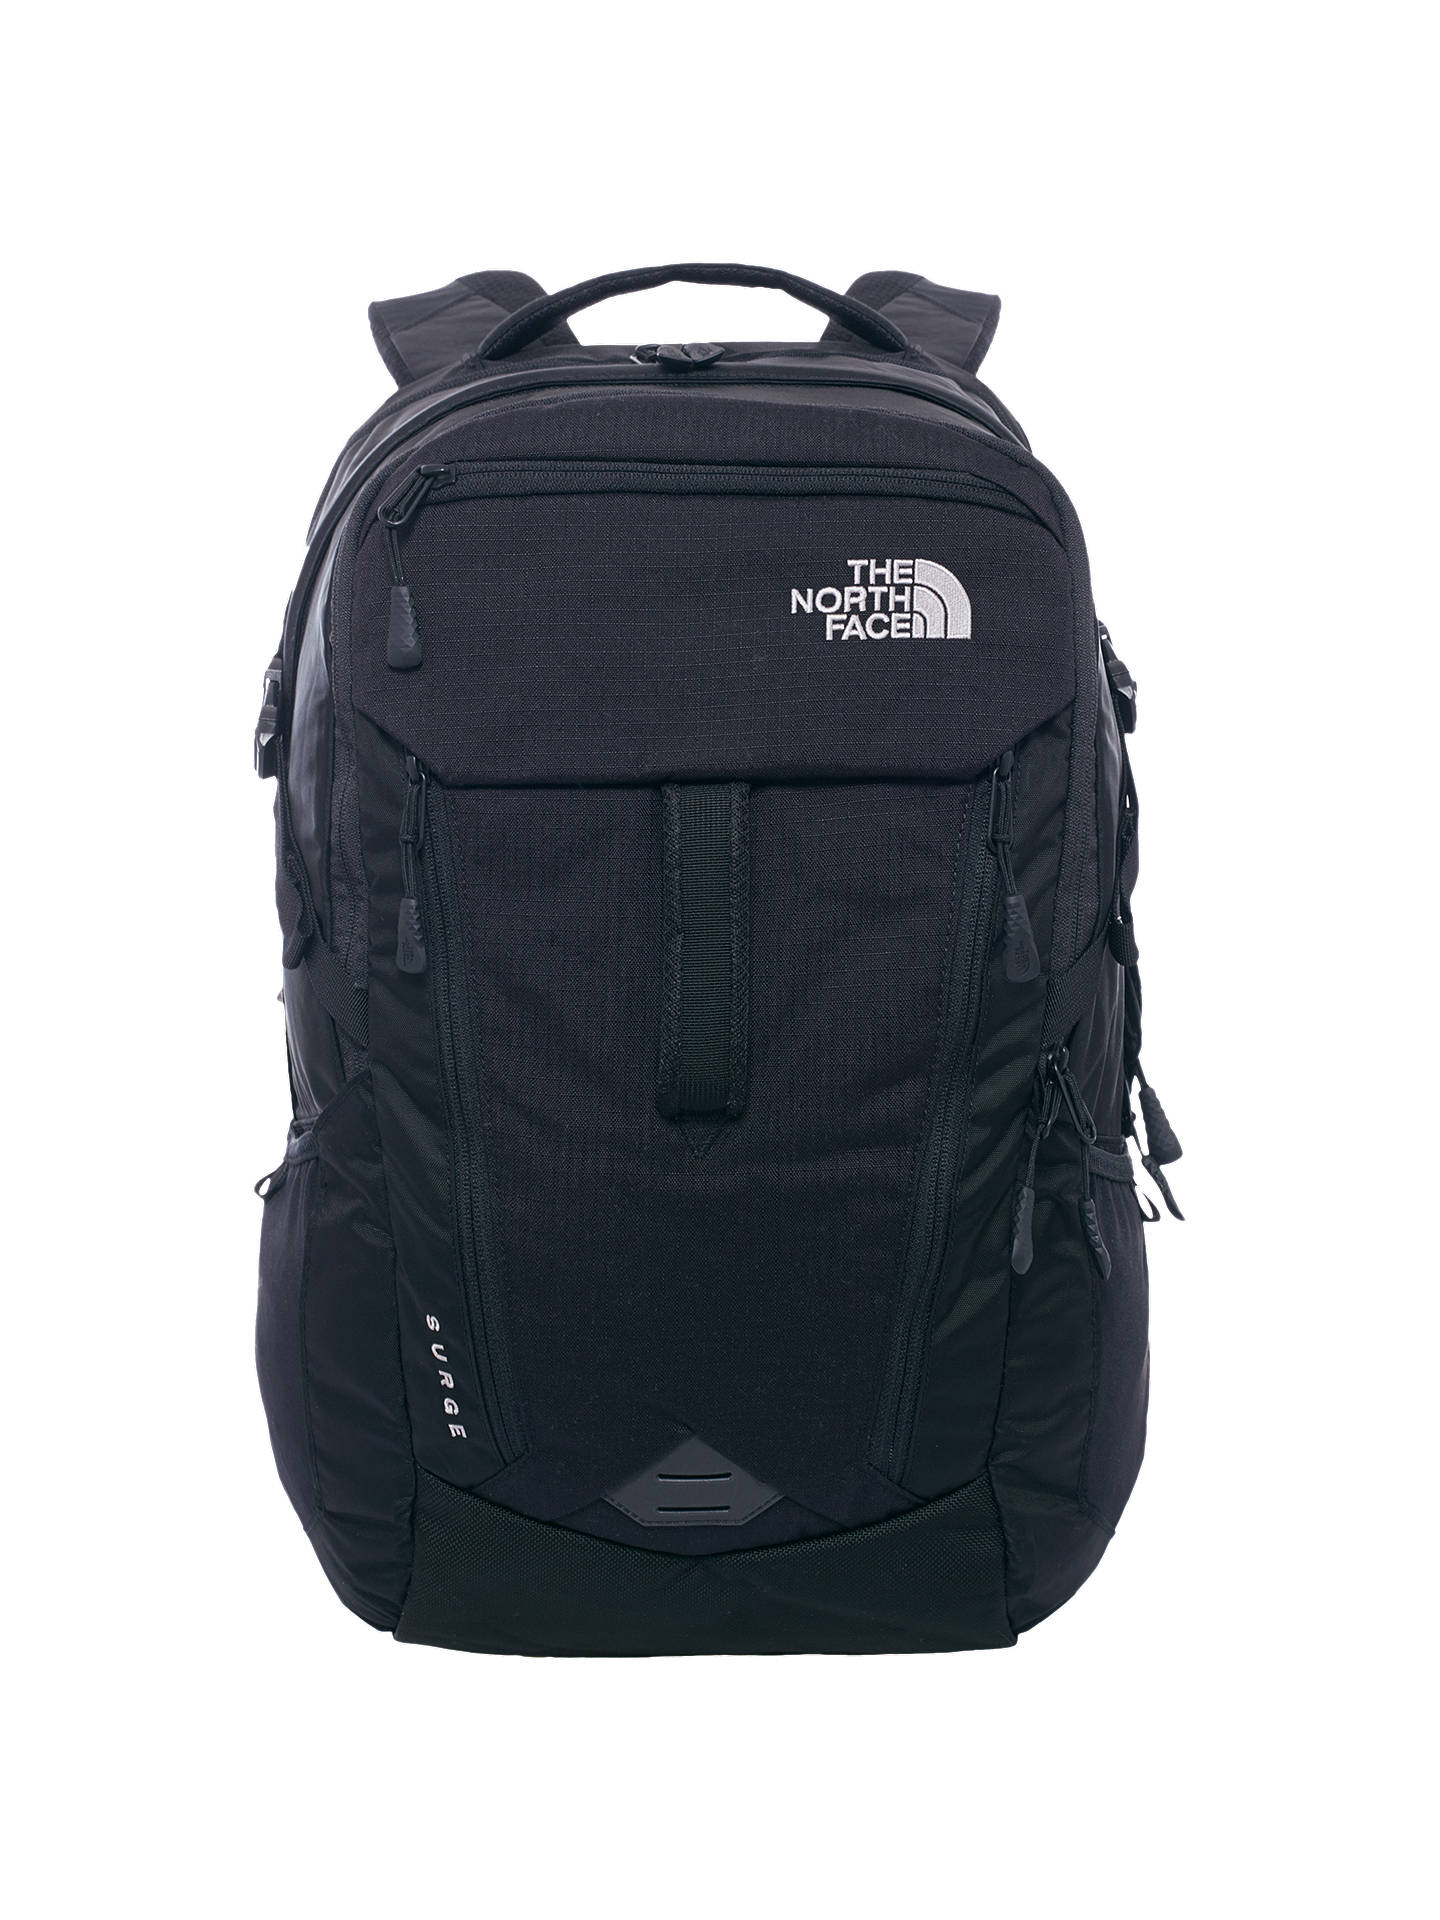 24c592866 The North Face Surge Backpack, Black